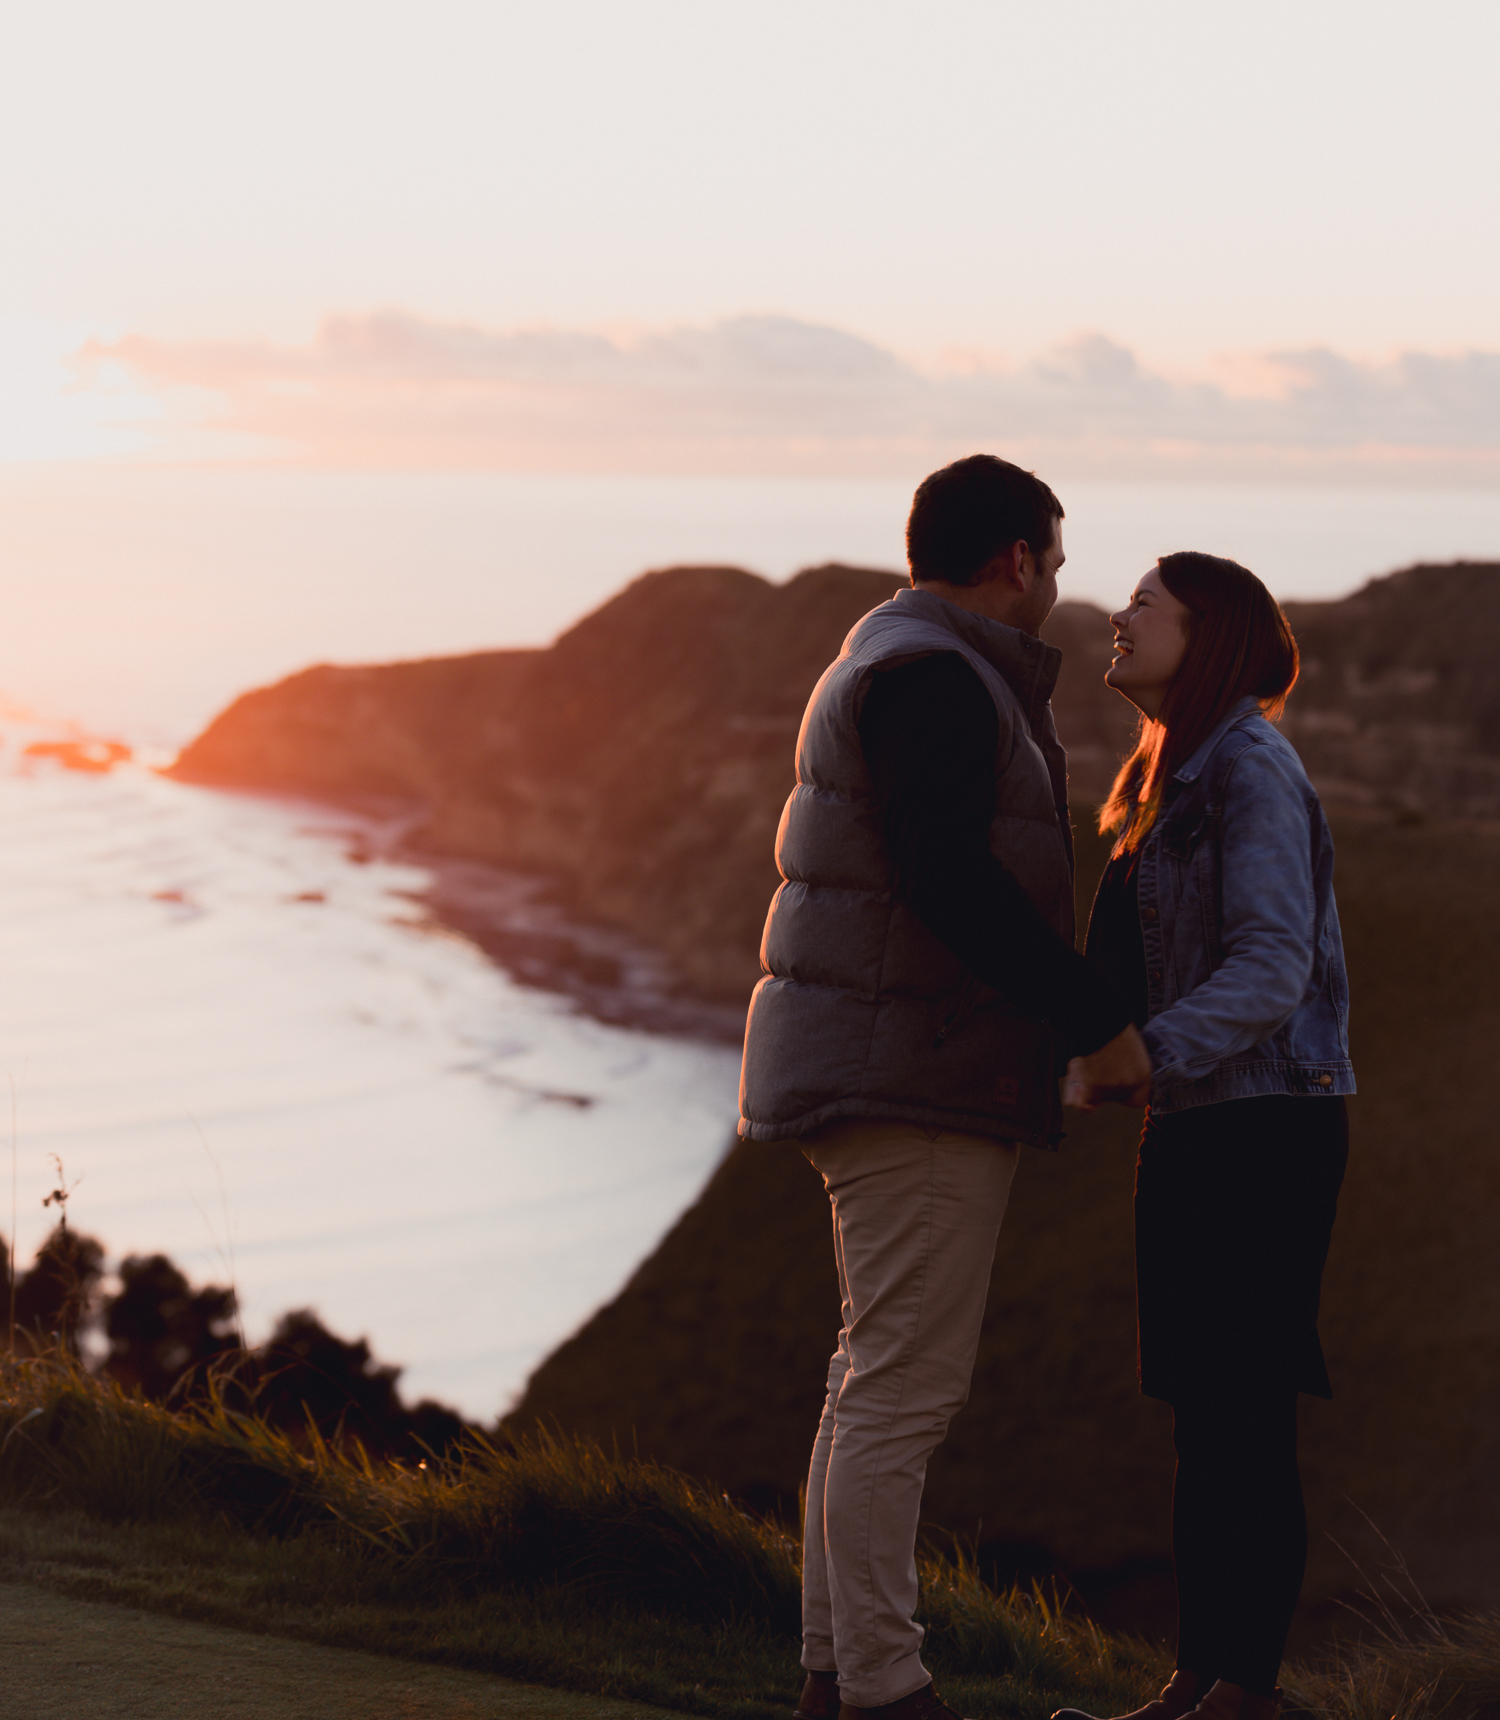 cape-kidnappers-golf-course-at-sunrise-hawkes-bay-in-background-couple-cuddling-together.jpg